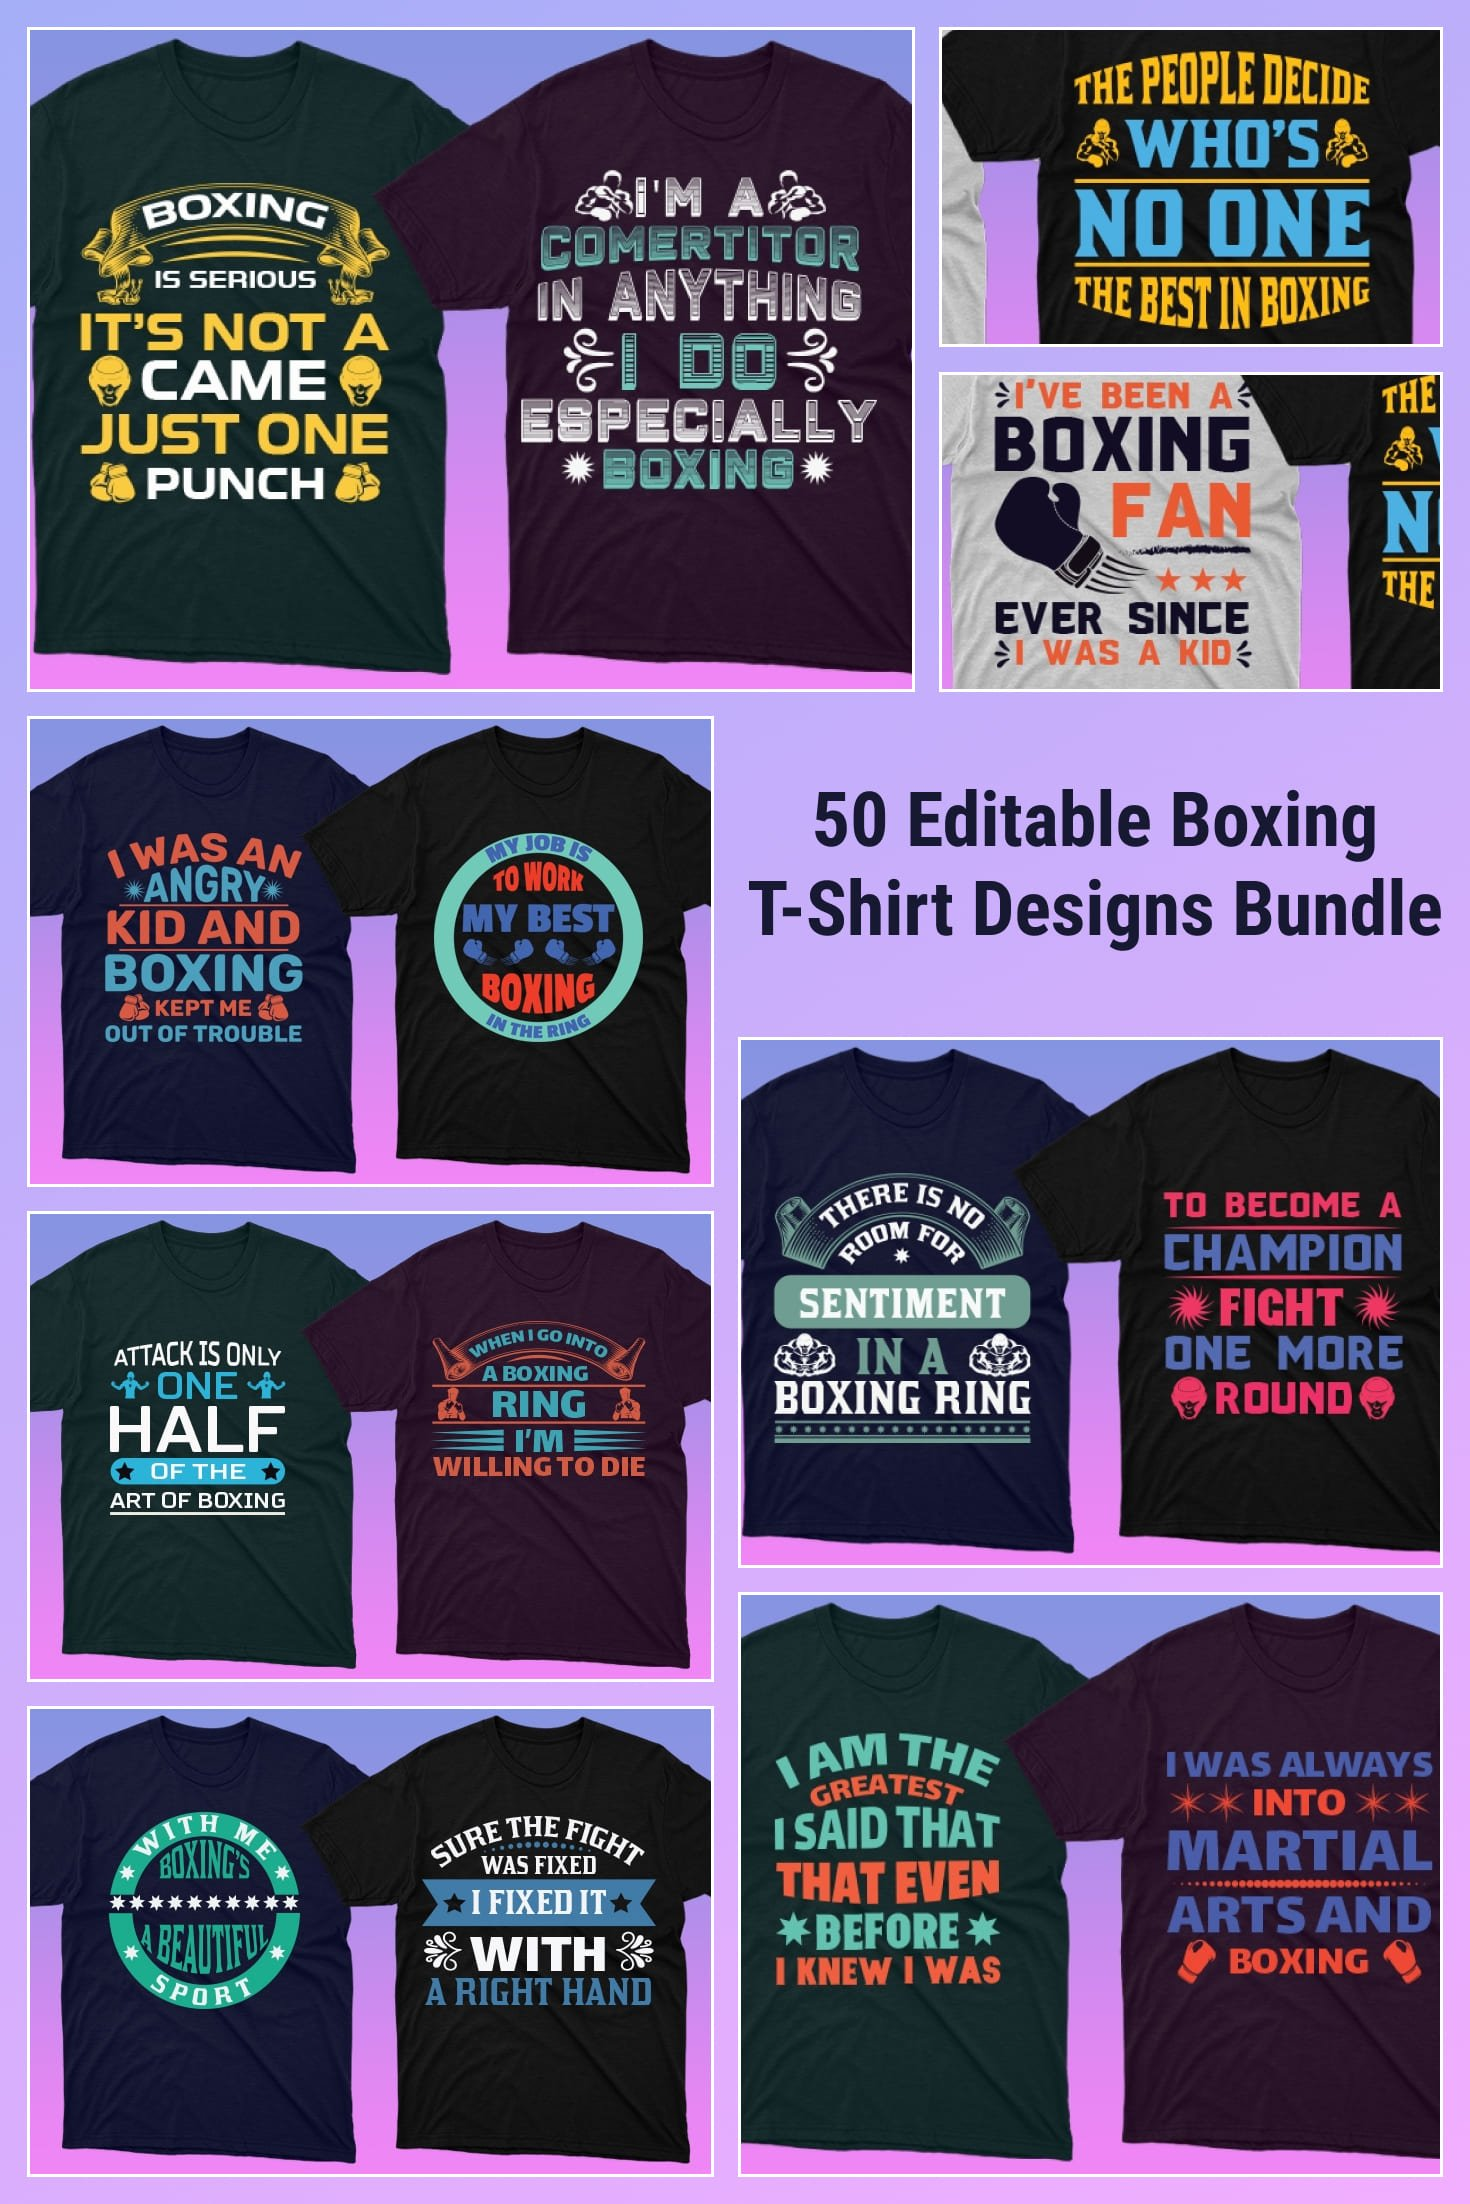 Themed t-shirts with colorful graphics.